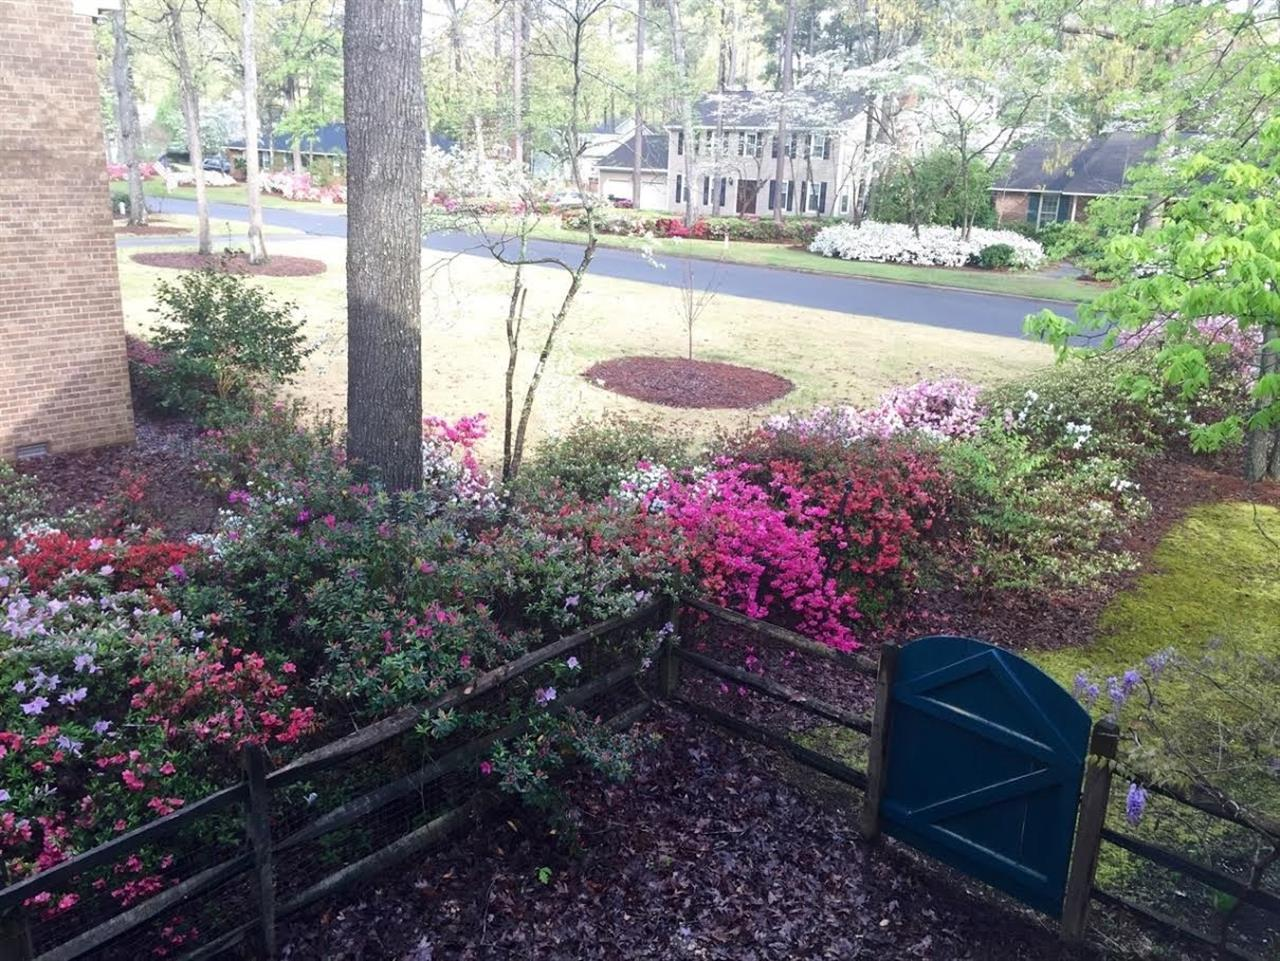 Spring always promises a colorful show of azaleas in Fayetteville, North Carolina.  Submitted by Lee McMillan